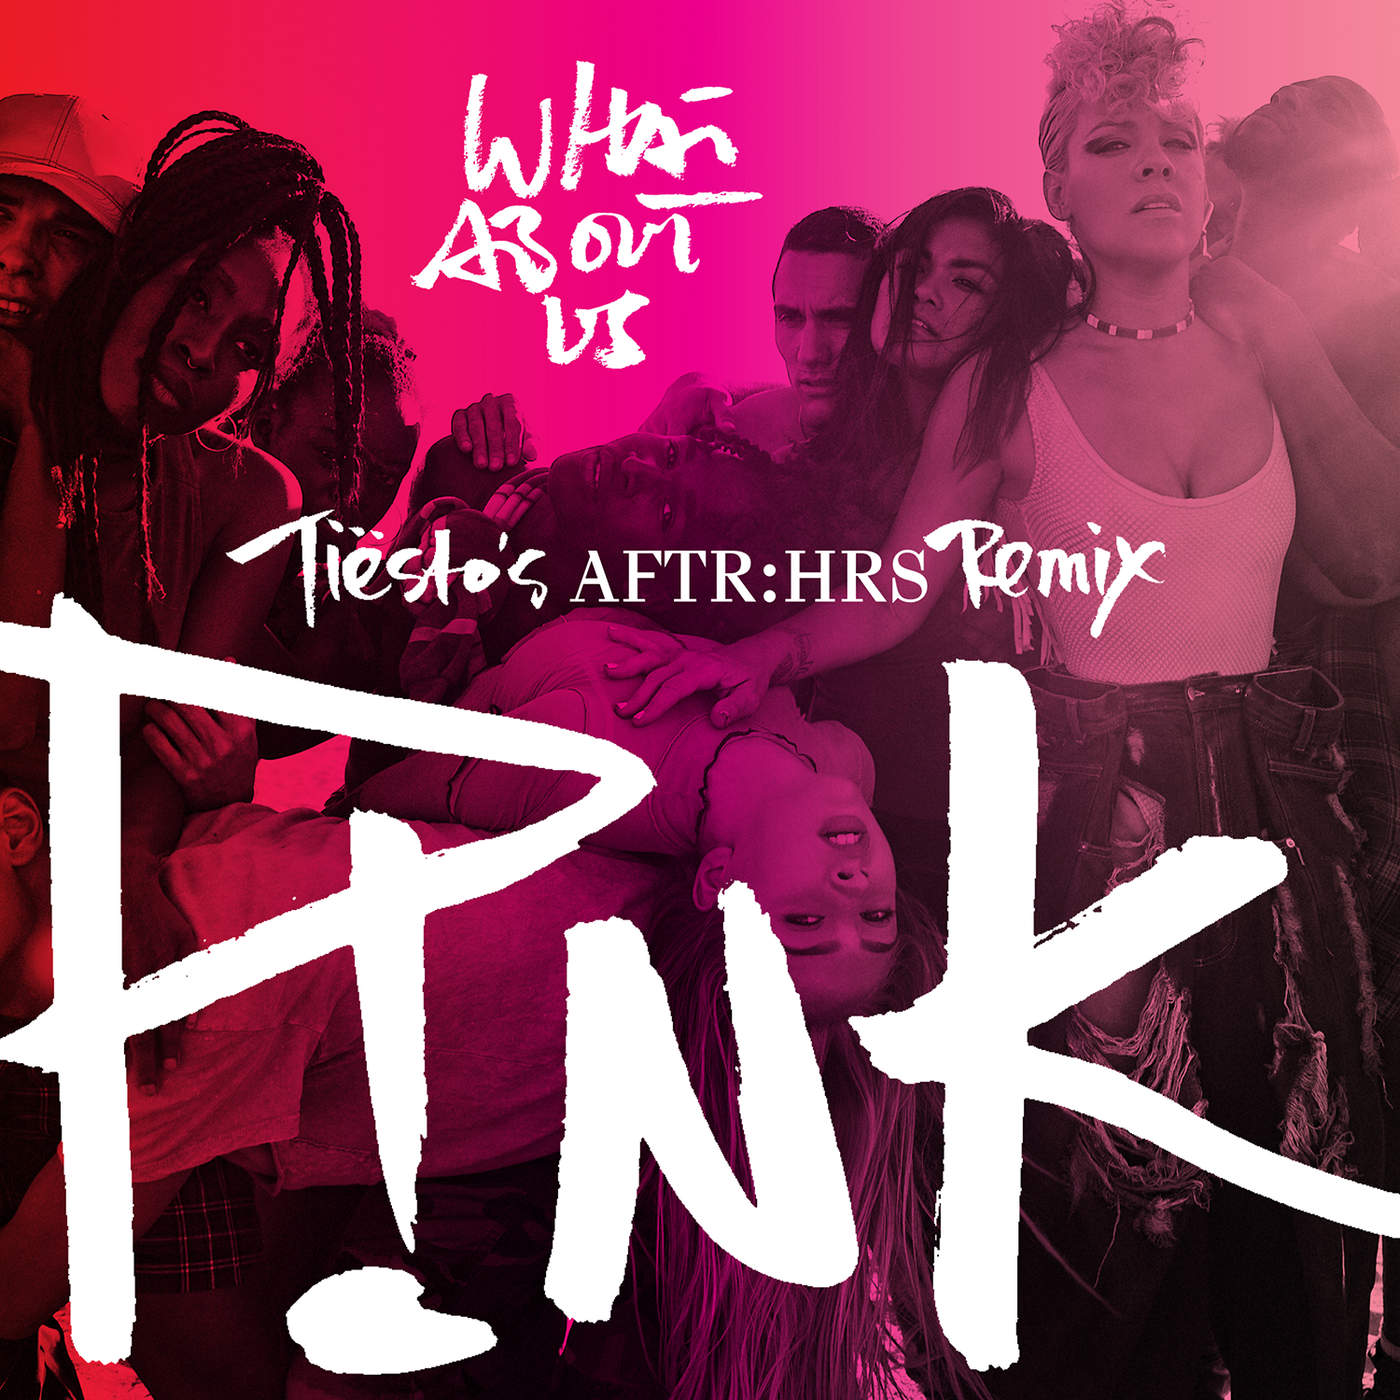 P!nk - What About Us (Tiësto's AFTR:HRS Remix) - Single